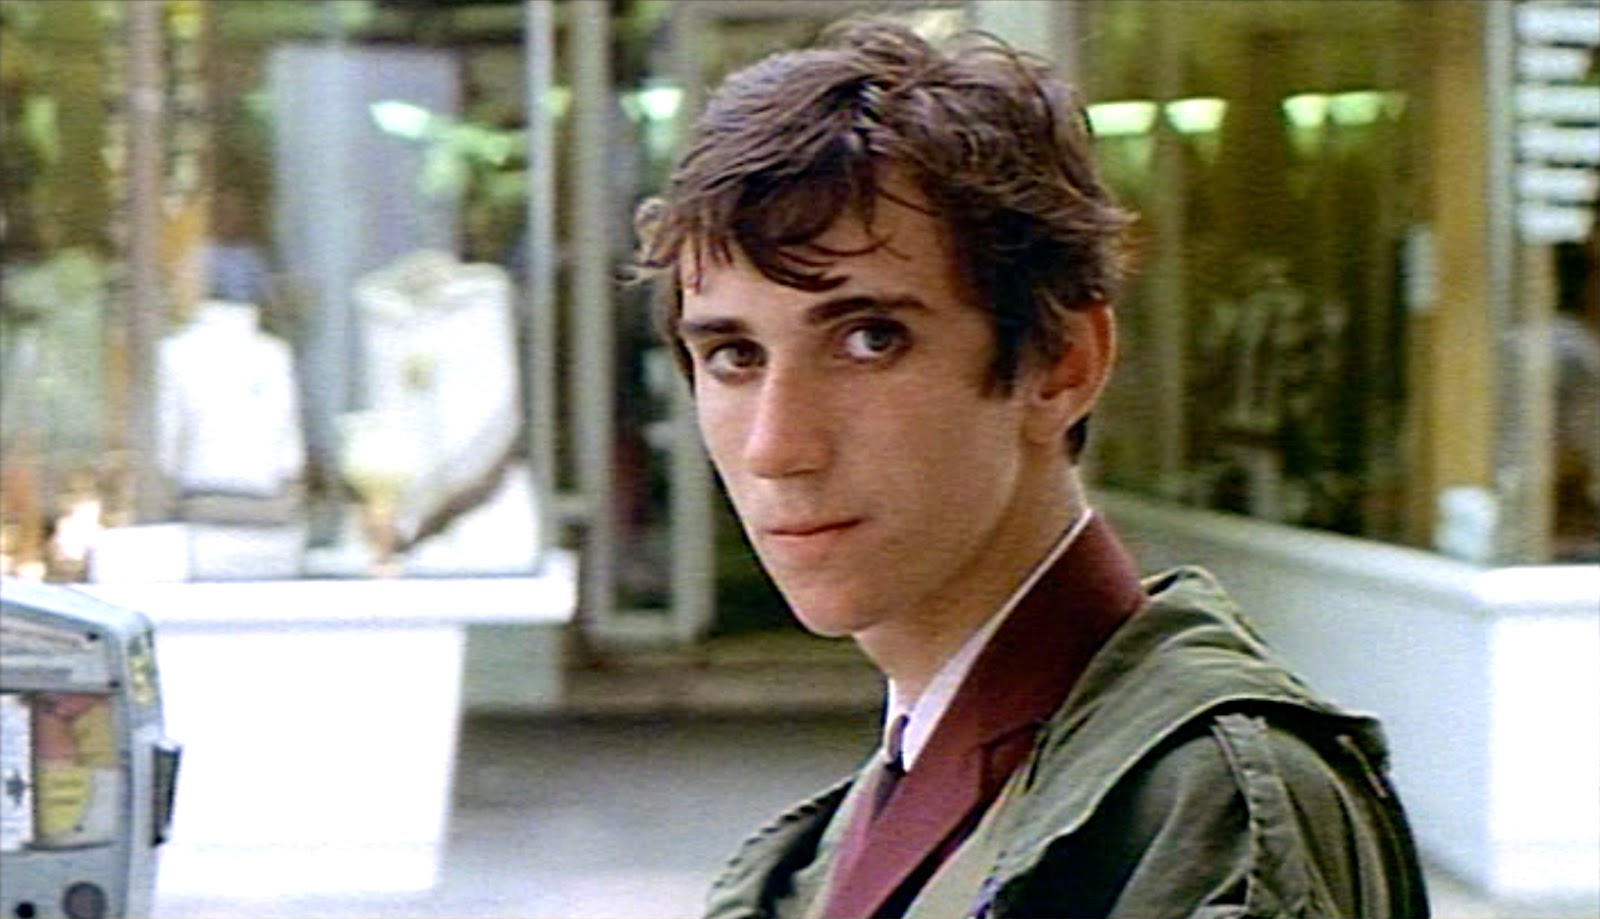 phil daniels eastendersphil daniels young, phil daniels, phil daniels quadrophenia, phil daniels blur, phil daniels eastenders, phil daniels les miserables, phil daniels bugsy malone, phil daniels jan stevens, phil daniels imdb, phil daniels twitter, phil daniels partner, phil daniels wife death, phil daniels parklife video, phil daniels net worth, phil daniels parklife lyrics, phil daniels master of the house, phil daniels scum, phil daniels thenardier, phil daniels parklife youtube, phil daniels neighbours